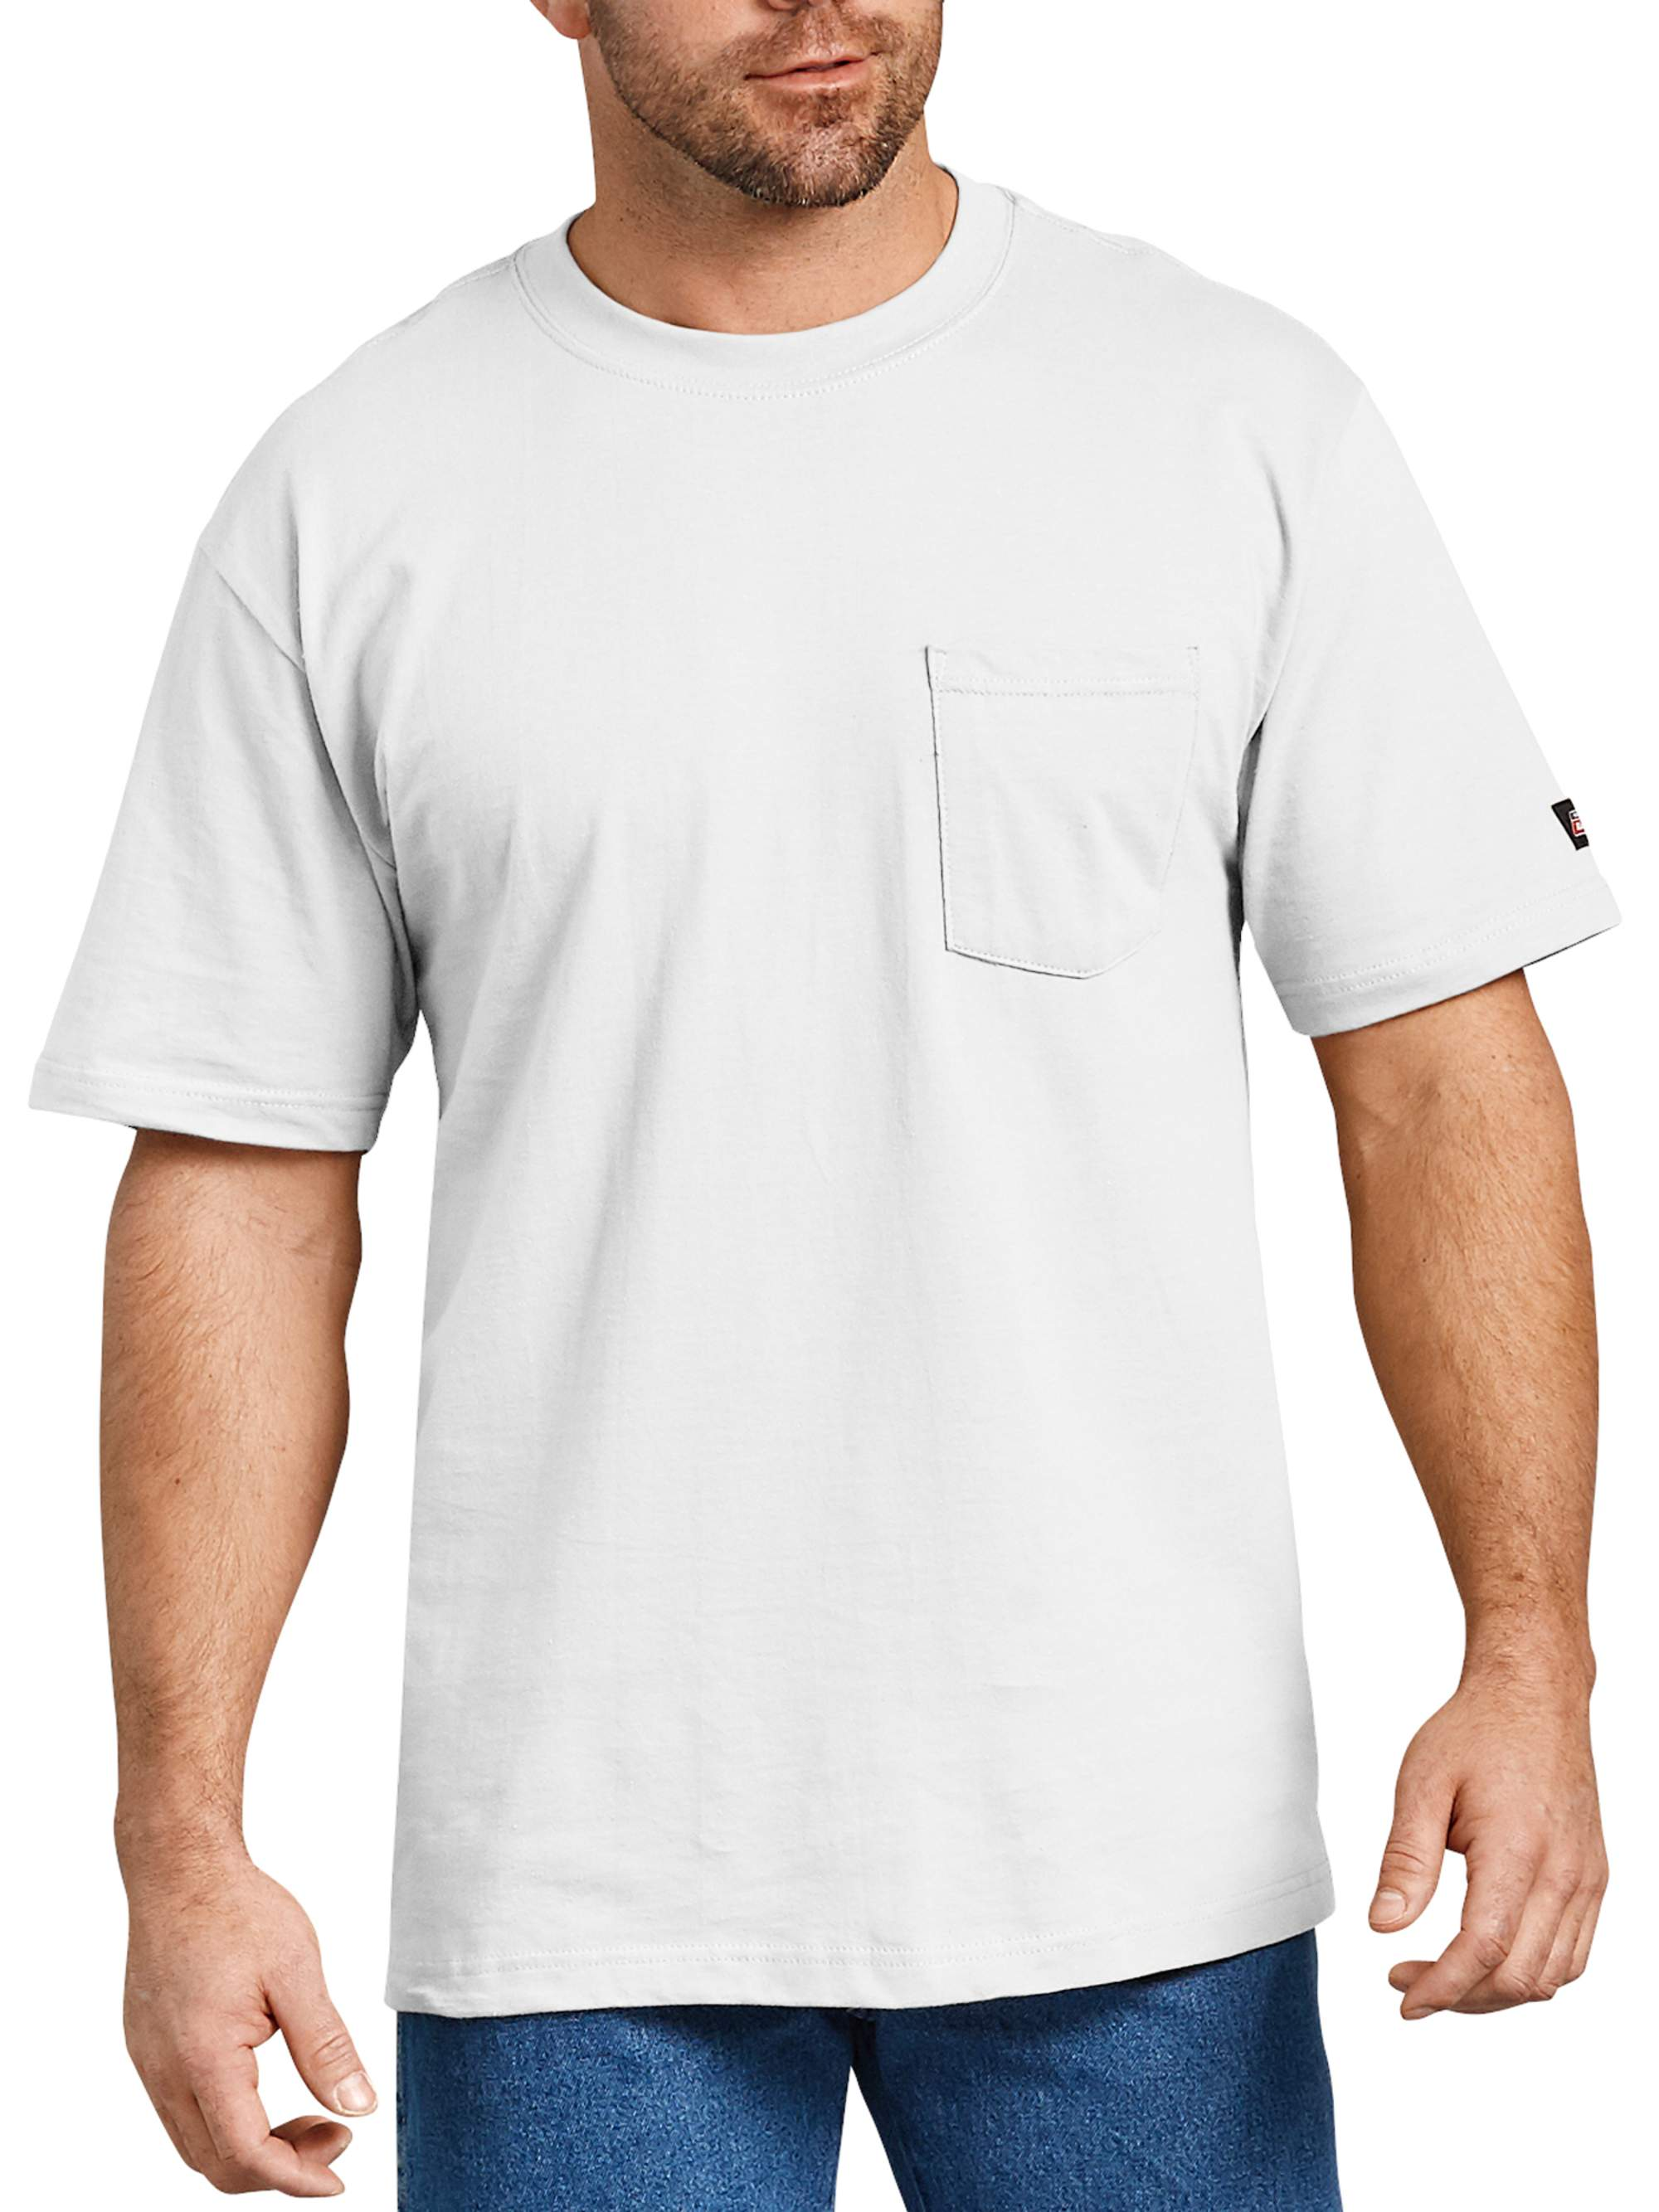 Men's Performance Short Sleeve Pocket Tee